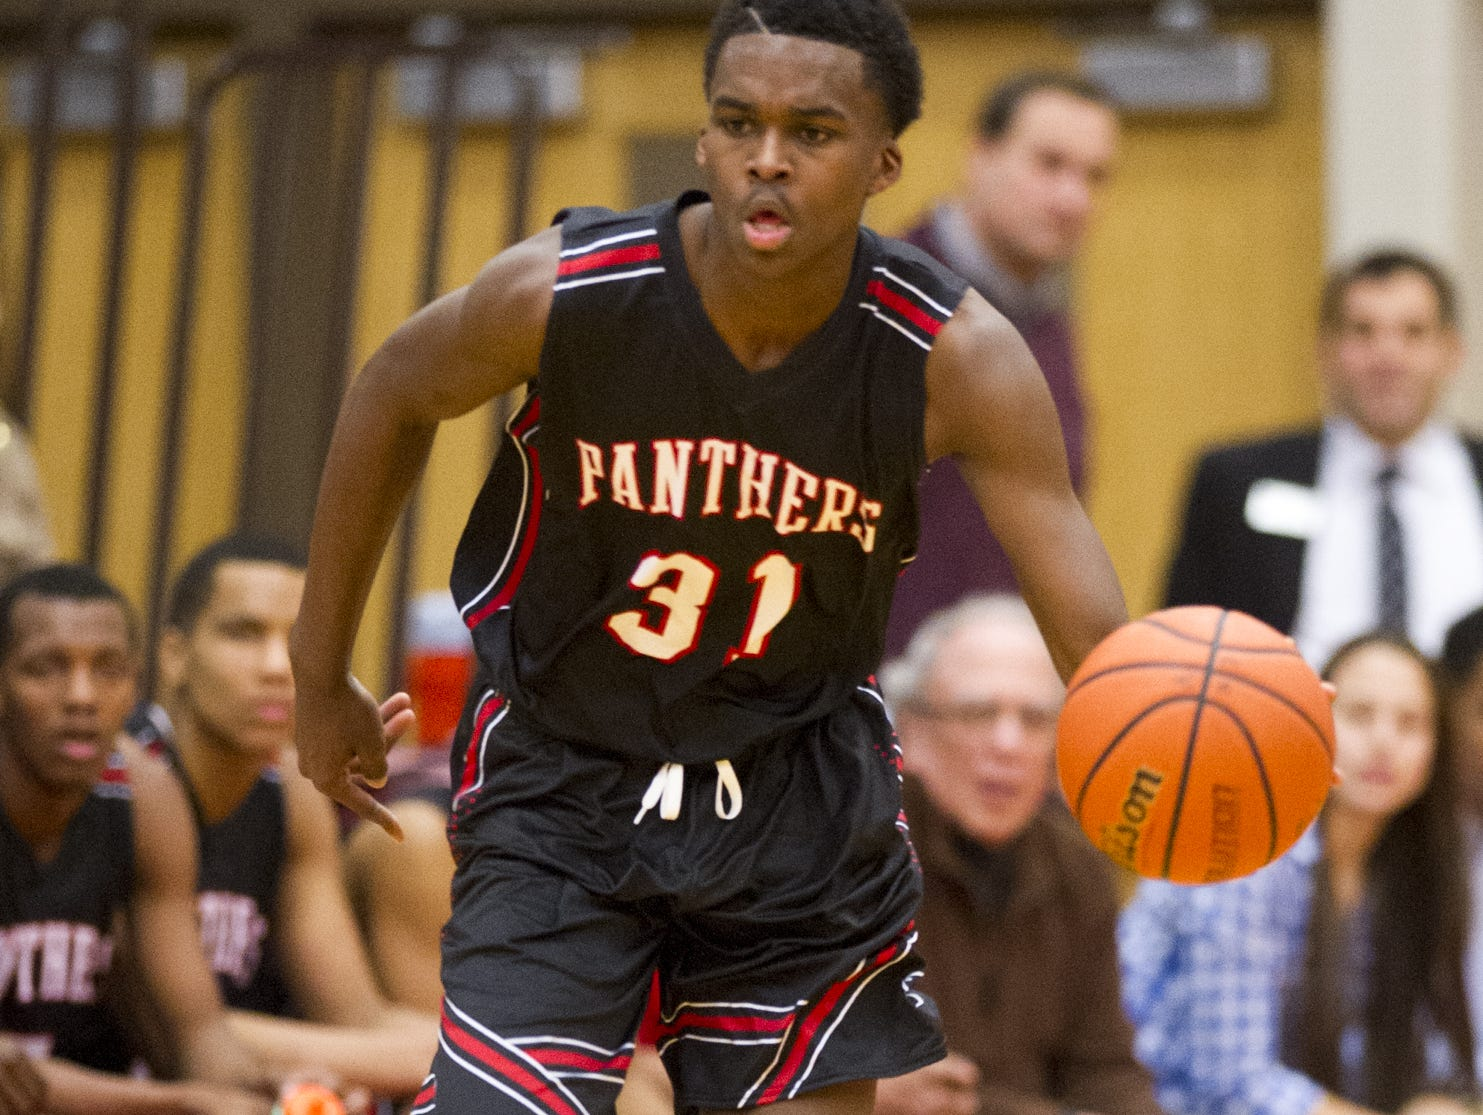 North Central High School sophomore Kris Wilkes (31) brings the ball up court during the first half of action. Lawrence North High School hosted North Central High School in a first-round game of the 2015 Marion County Boys Basketball Tournament, Tuesday, Jan. 13, 2015.